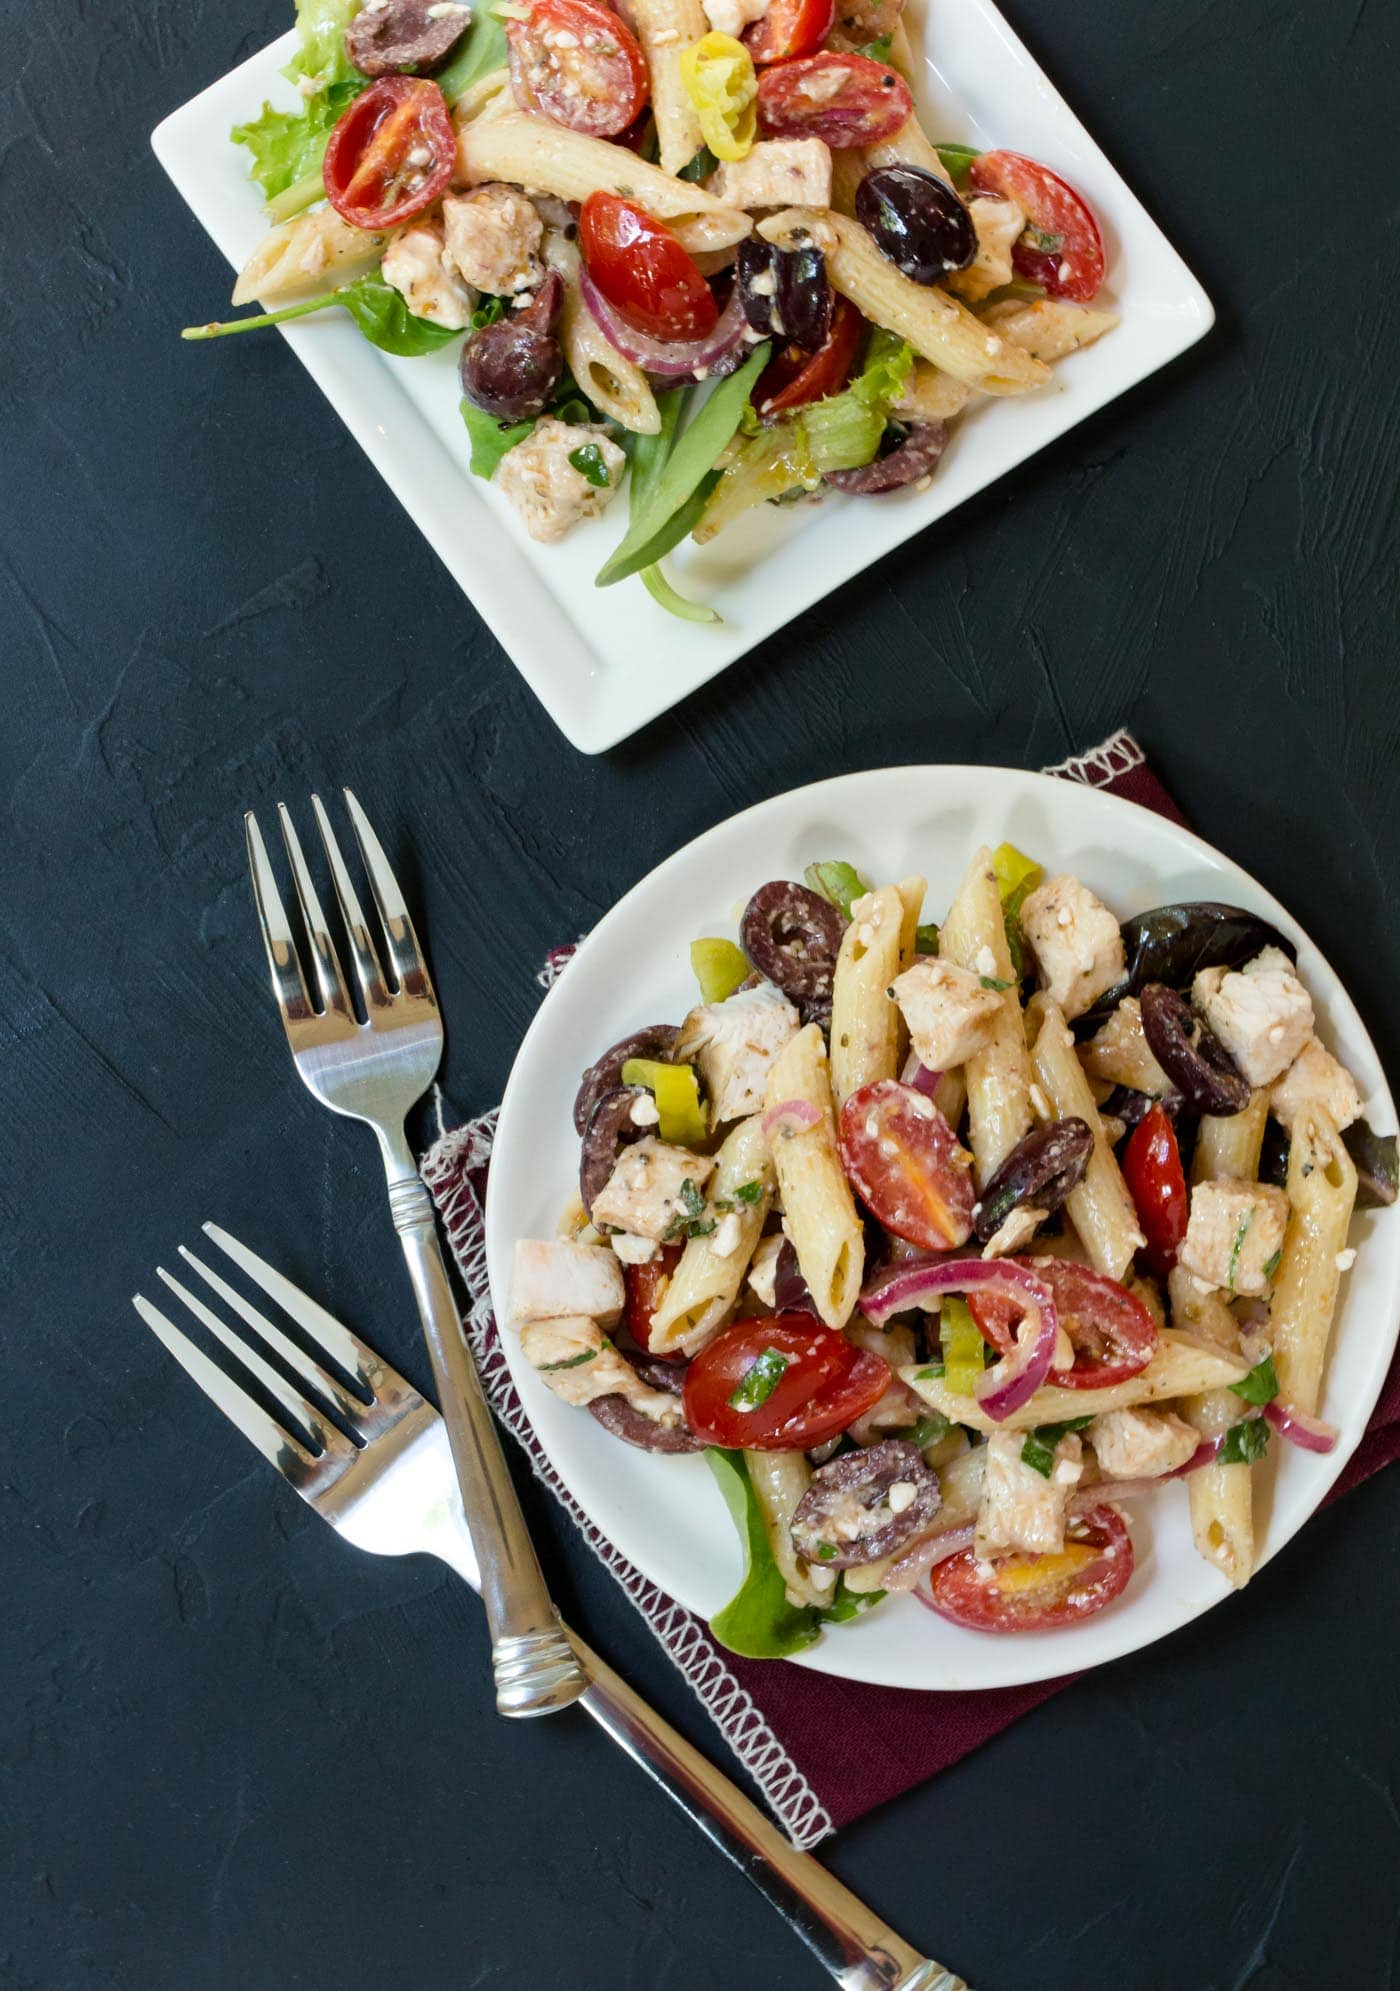 Fire up the grill and make this mayo free Greek Turkey Pasta Salad recipe! It's great for a summer BBQ!